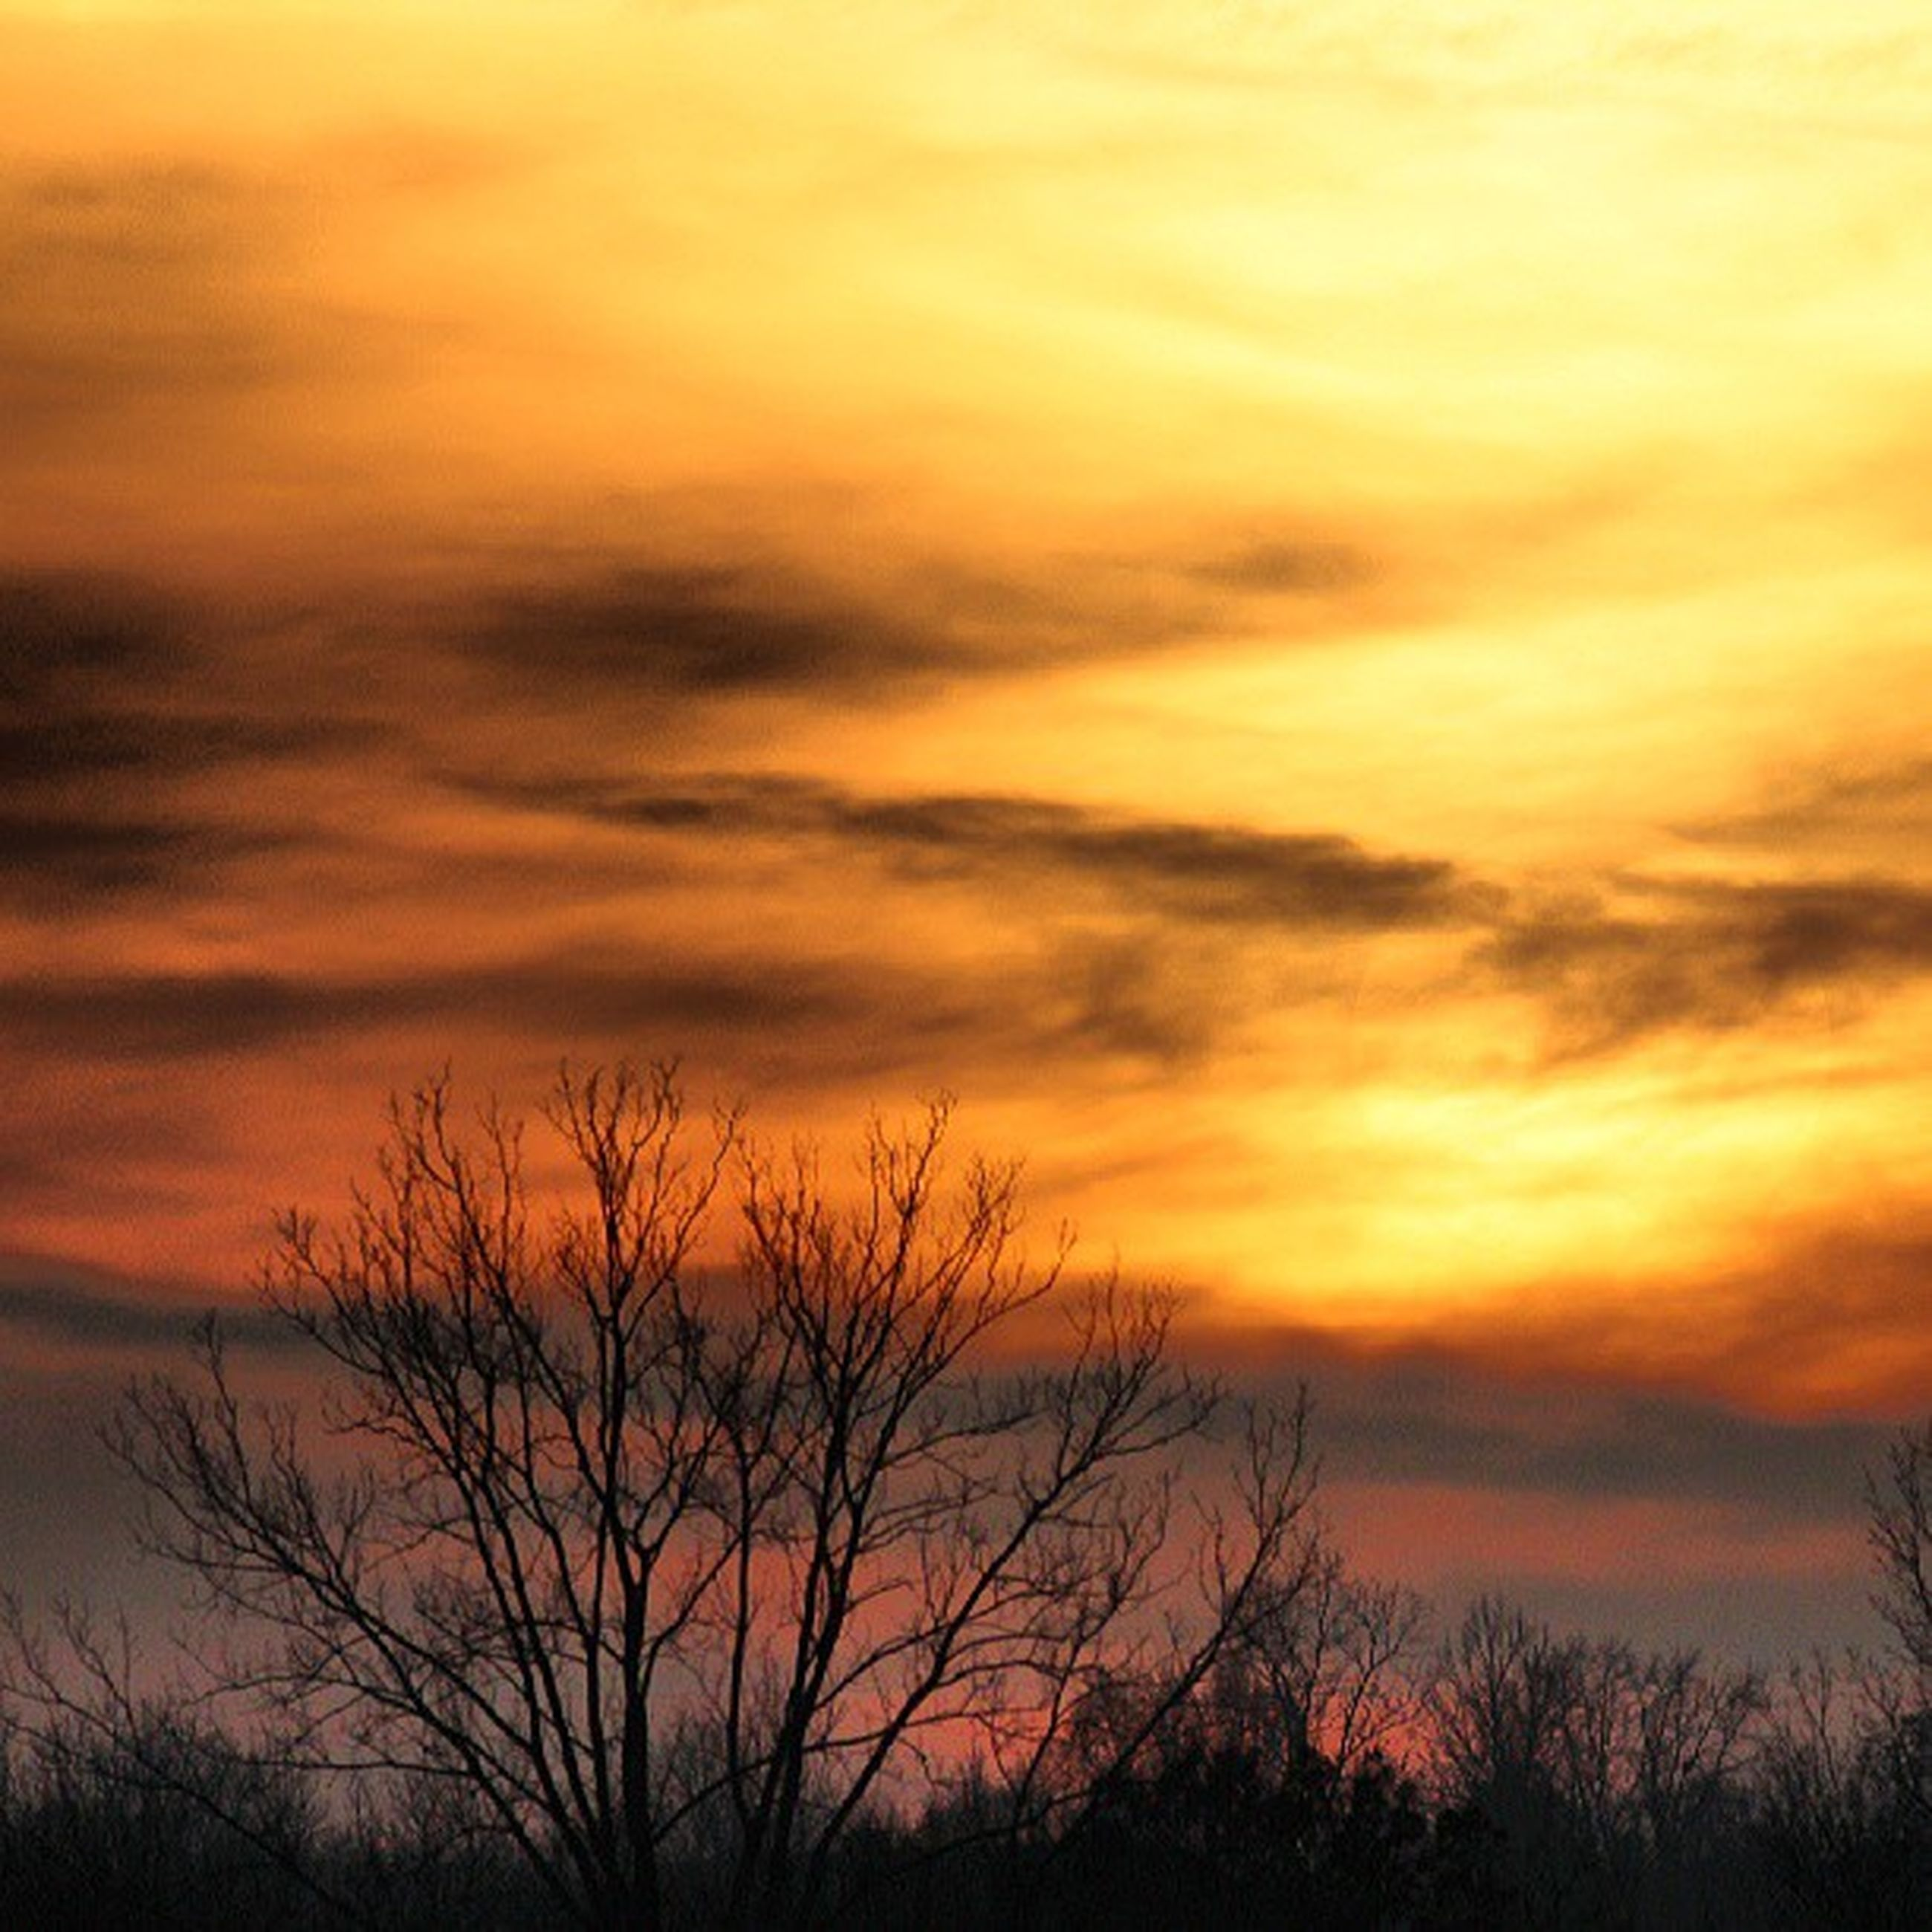 sunset, silhouette, orange color, sky, beauty in nature, scenics, tranquility, tranquil scene, cloud - sky, tree, dramatic sky, nature, low angle view, bare tree, idyllic, majestic, cloud, branch, outdoors, no people